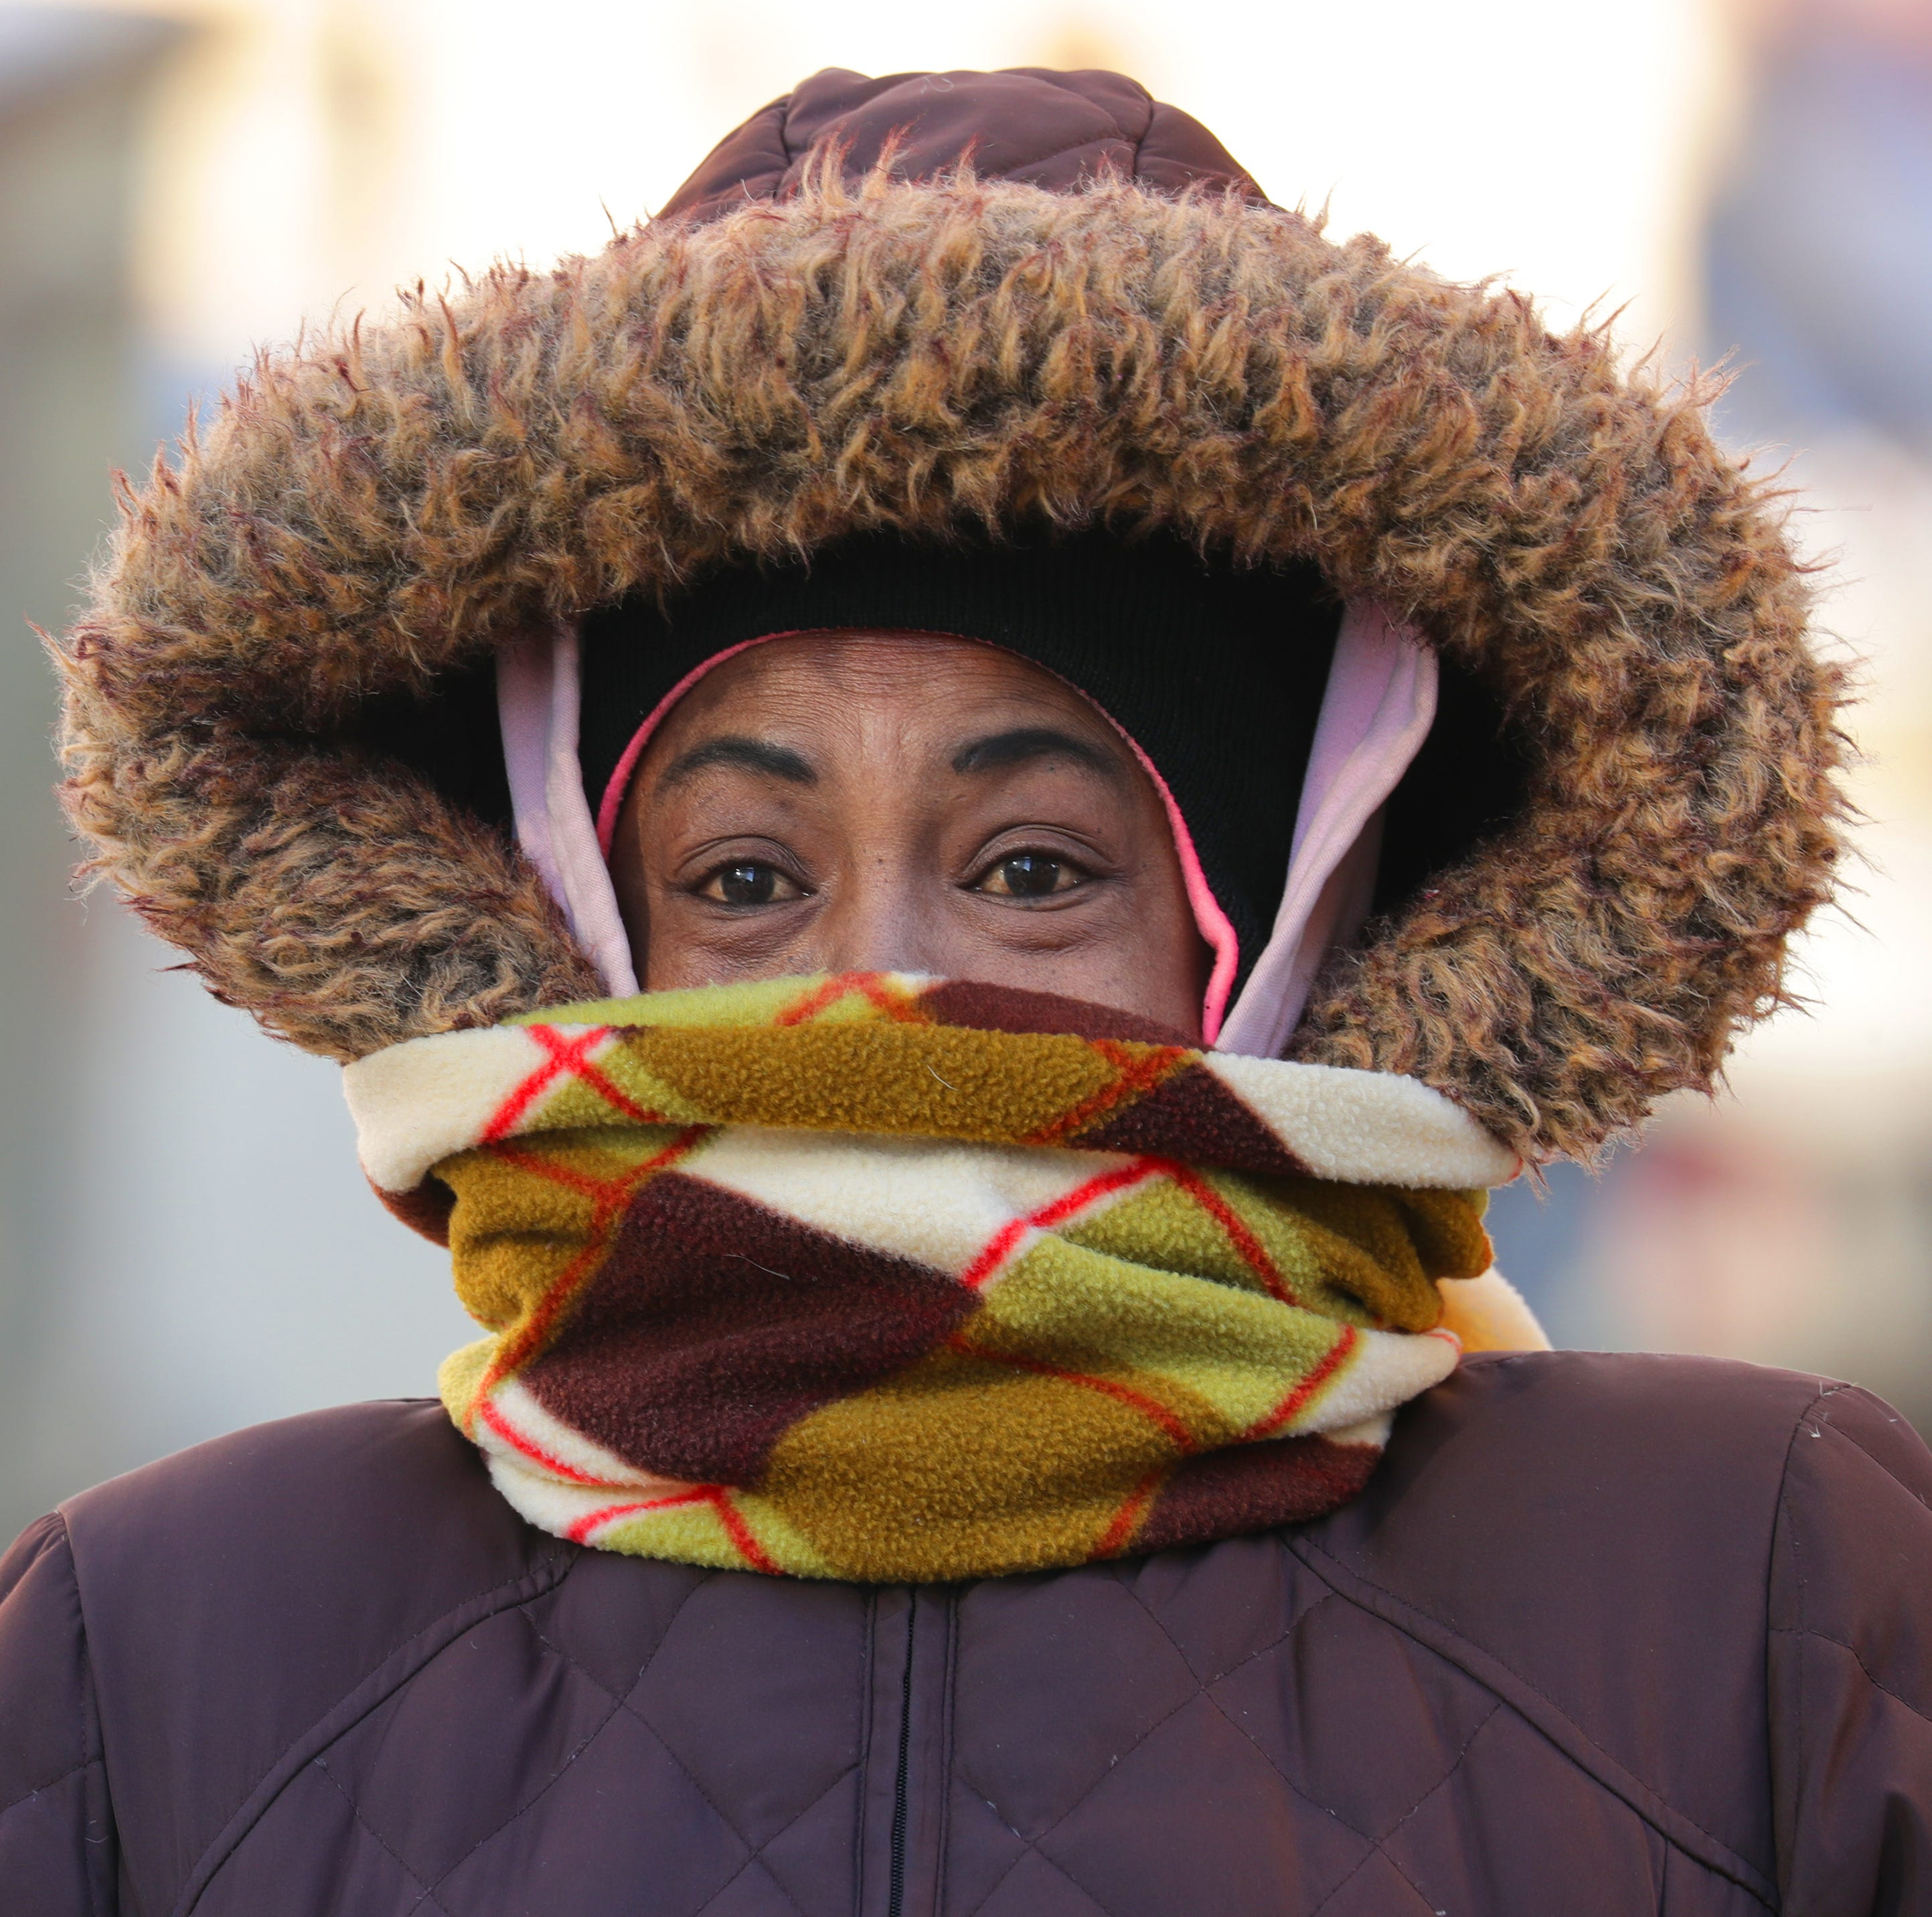 Wind chill advisory issued as temperatures plunge to dangerous lows